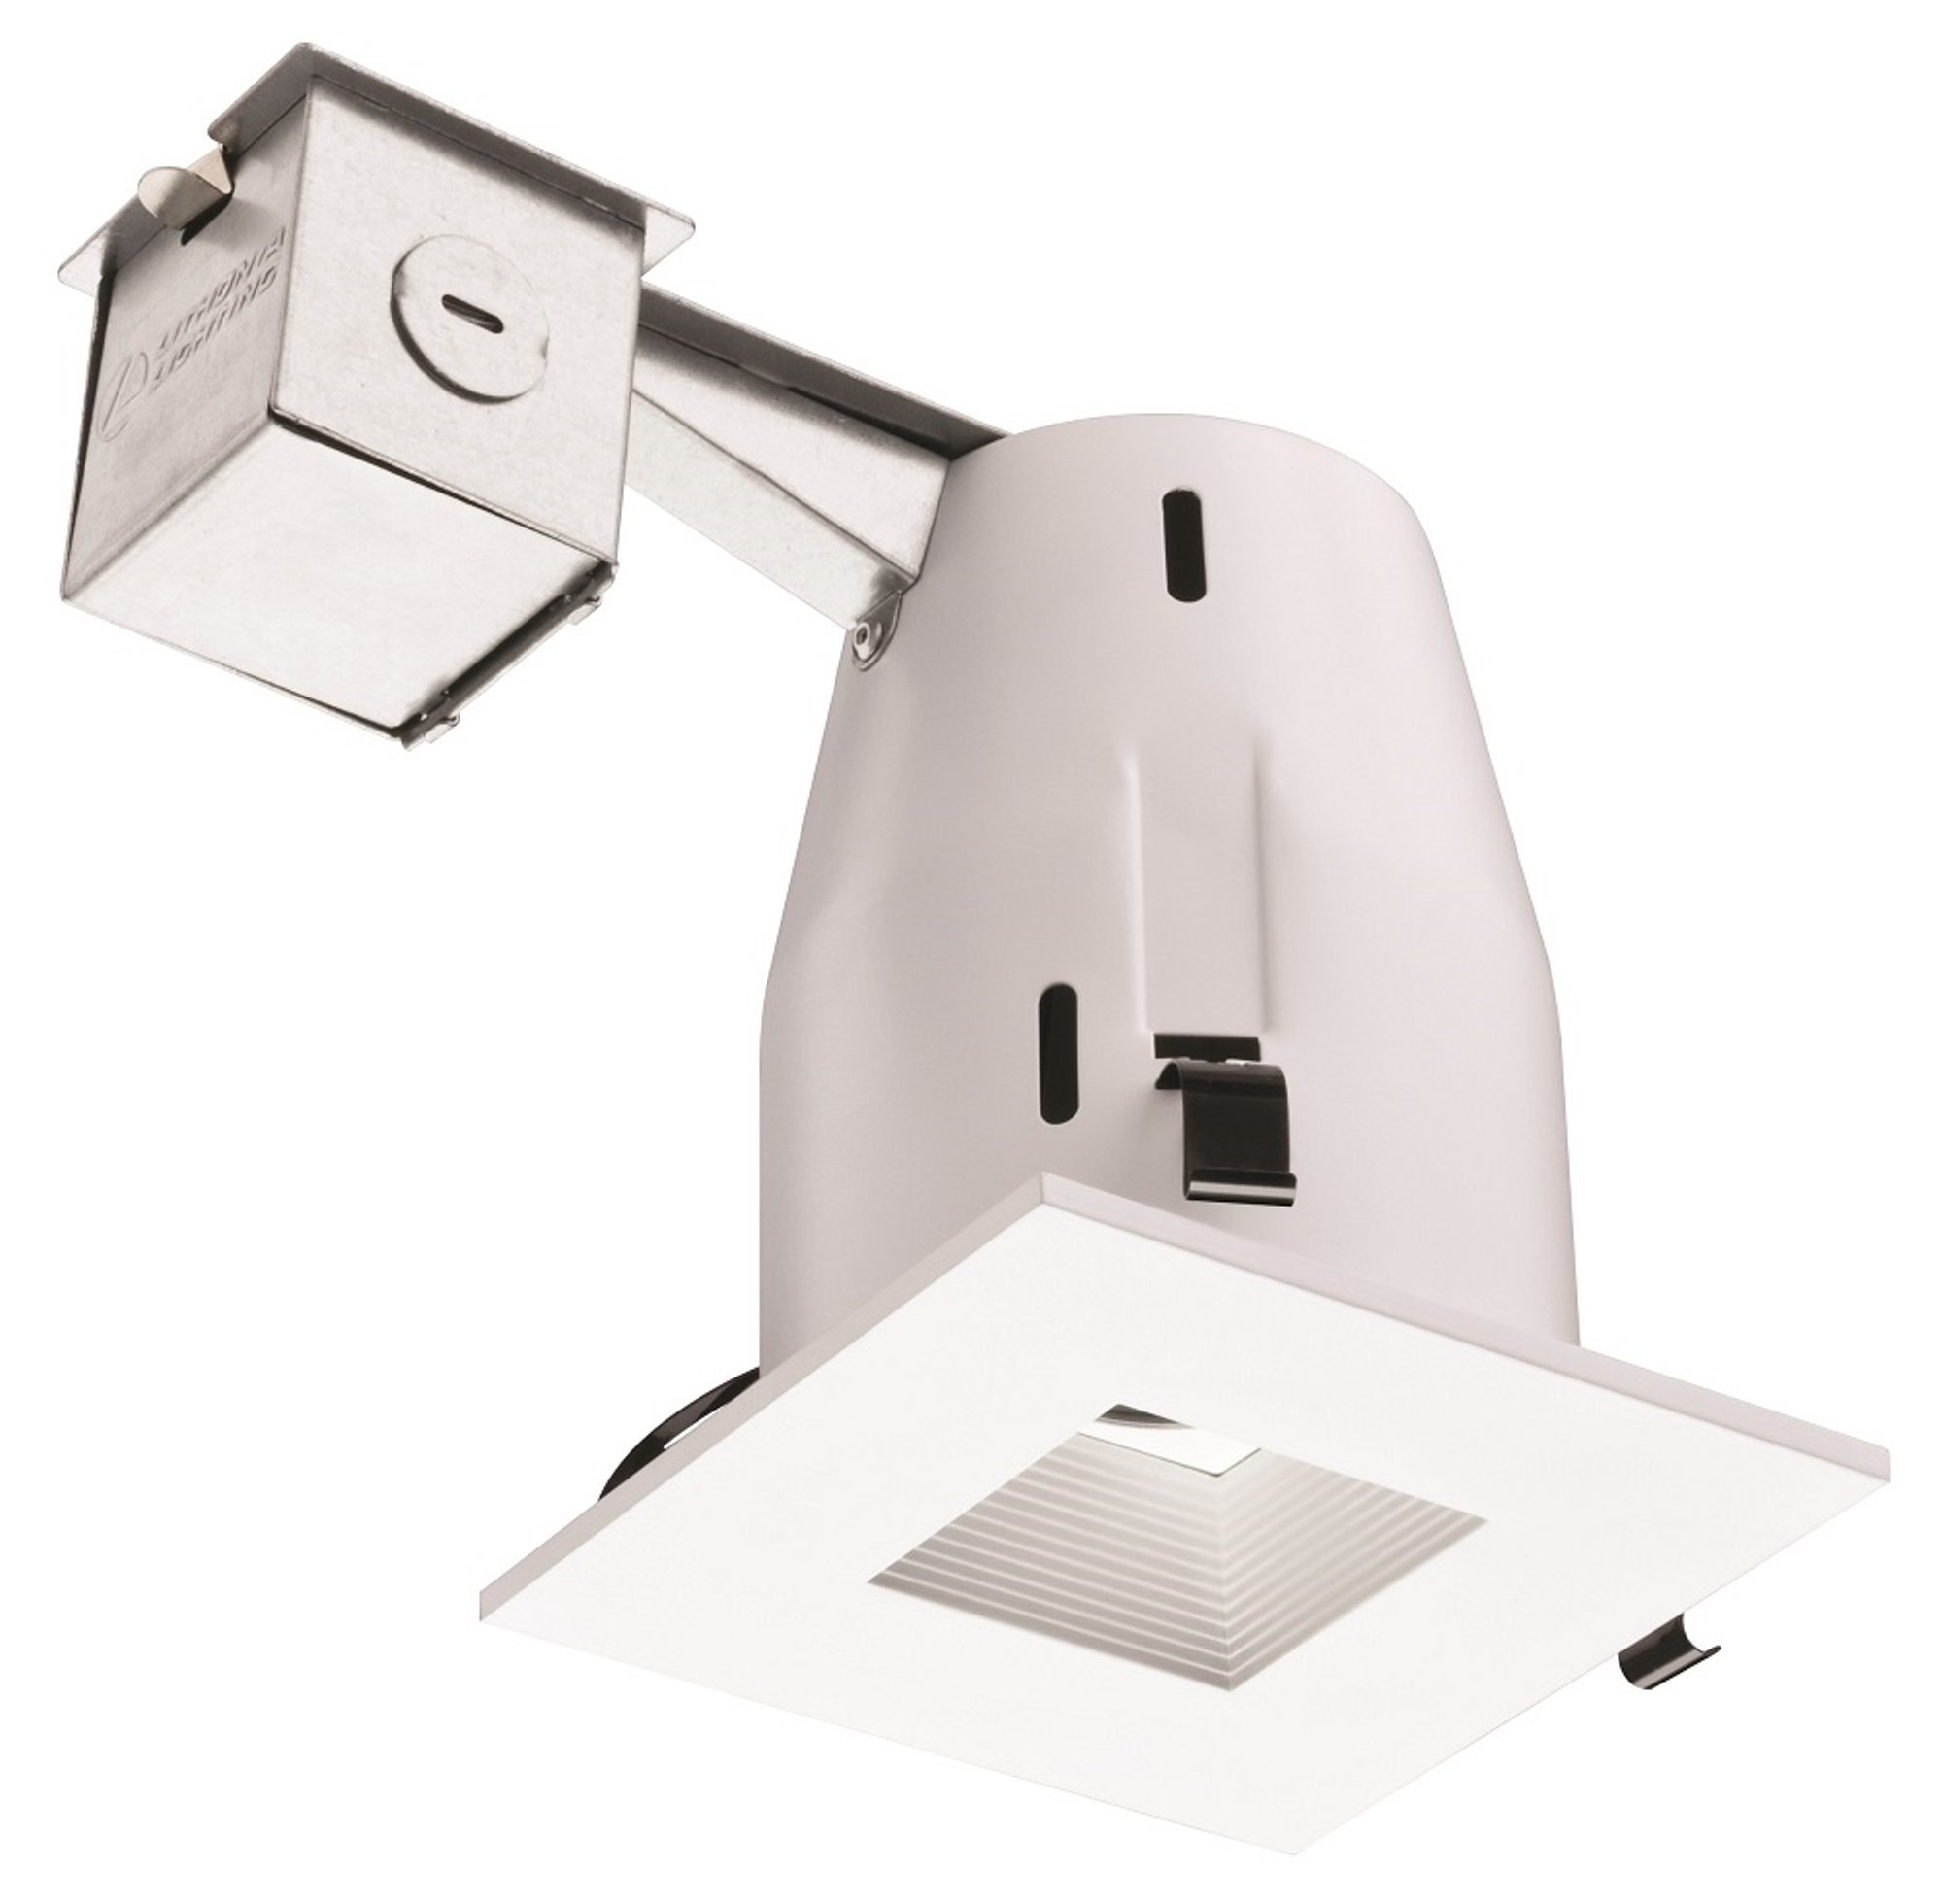 Lithonia Lighting LK4SQMW LED LPI M6 Square 4 Inch Kit with LED Lamp Included in White